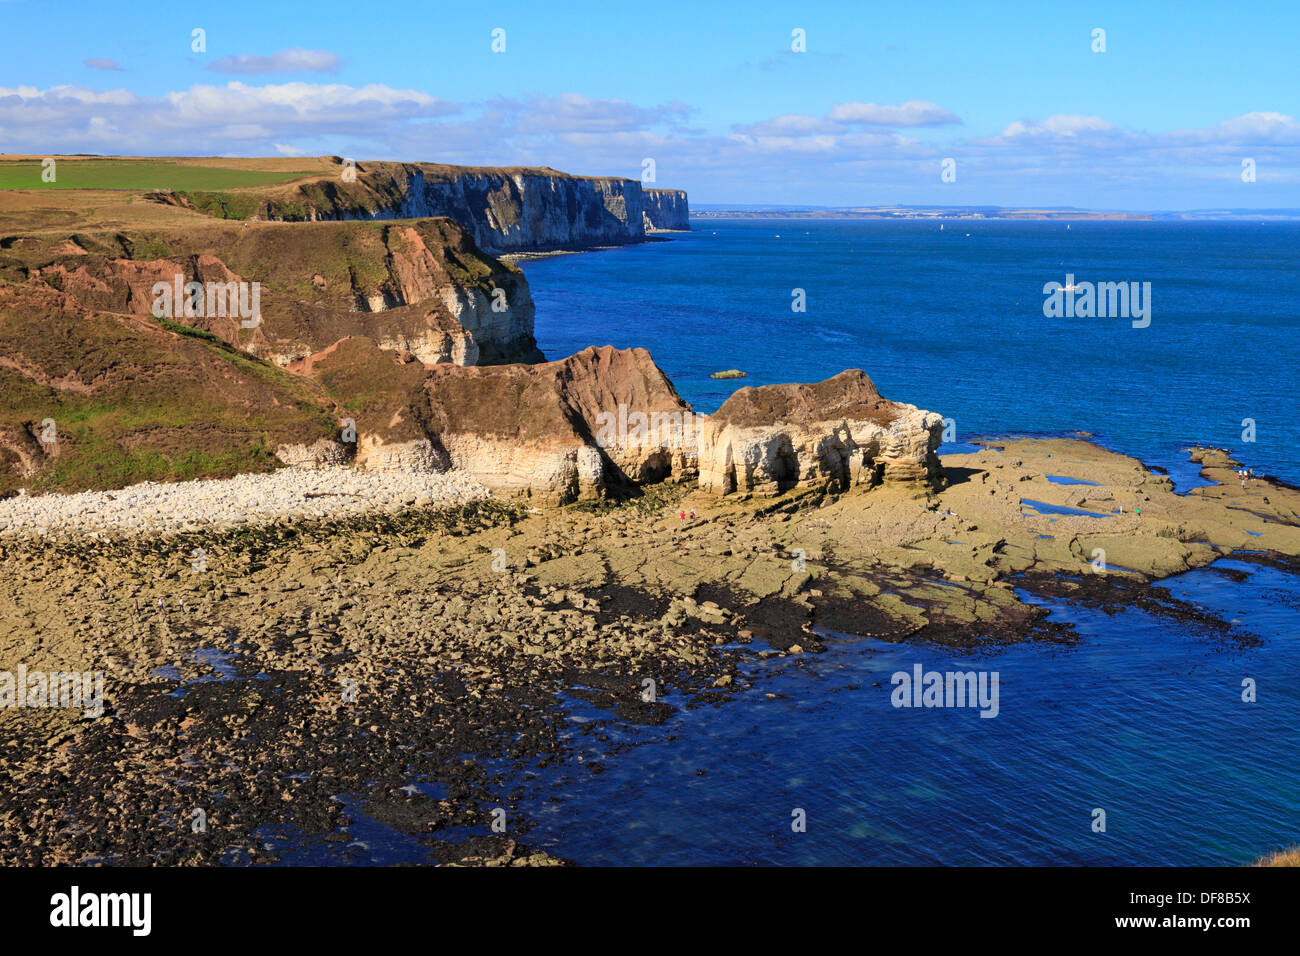 Thornwick Bay and distant Bempton Cliffs, Flamborough Head, East Yorkshire, England, UK. Stock Photo